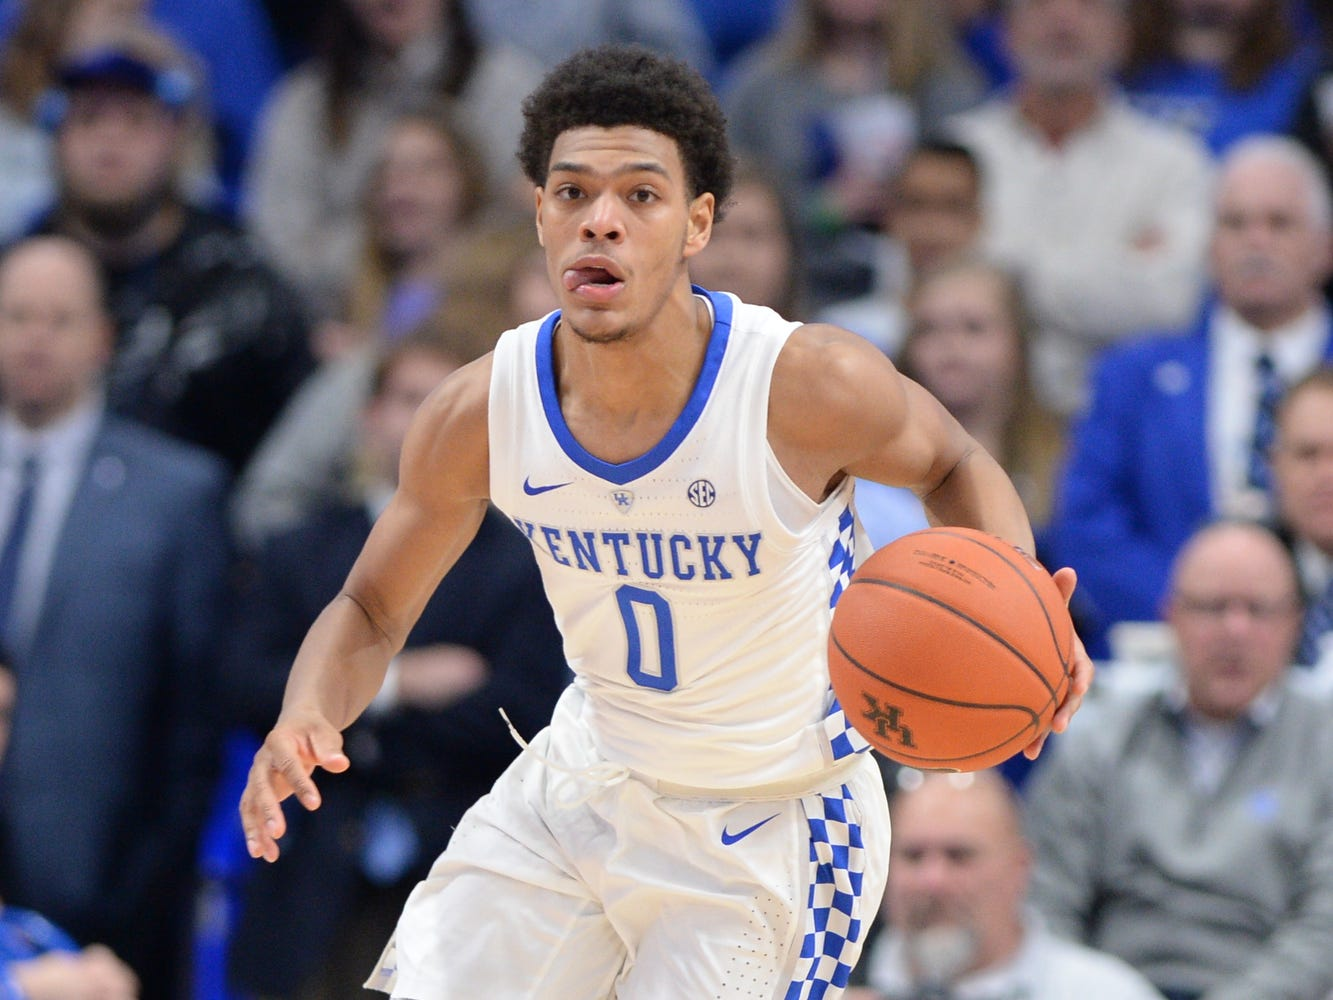 UK G Quade Green brings the ball up court during the University of Kentucky mens basketball game against Monmouth at Rupp Arena in Lexington, Kentucky on Wednesday, November 28, 2018.